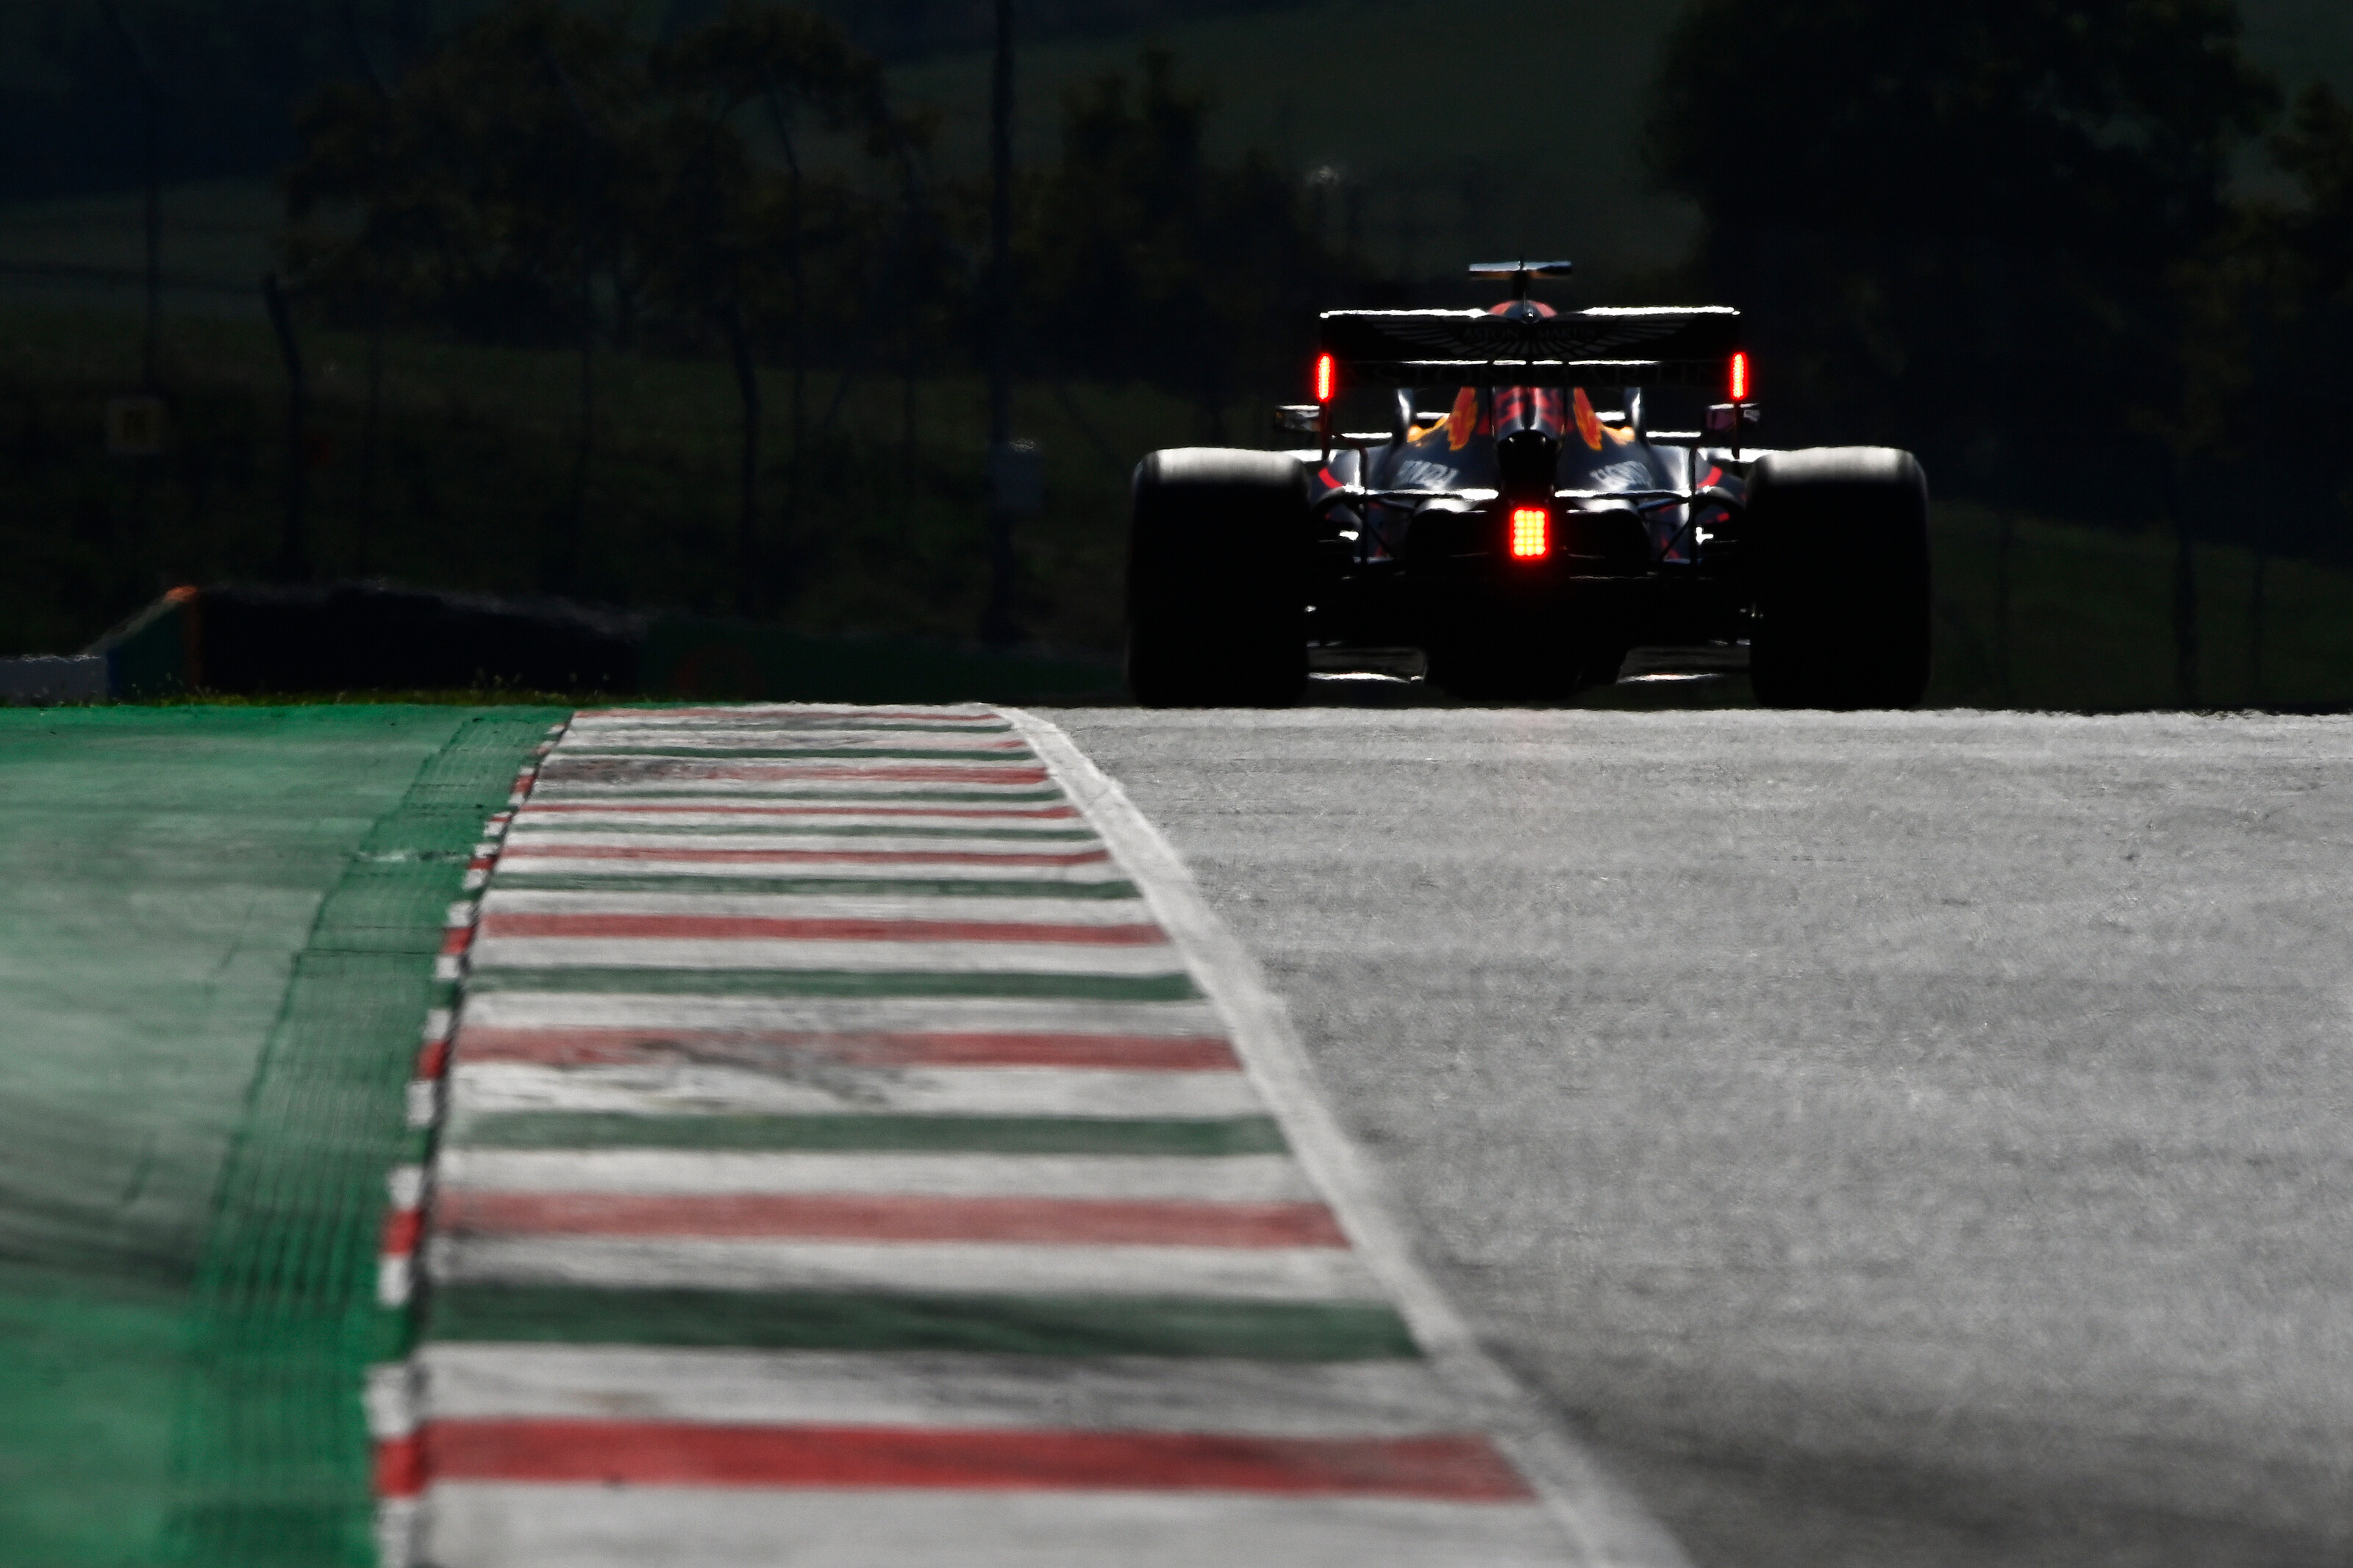 SCARPERIA, ITALY - SEPTEMBER 12: Max Verstappen of the Netherlands driving the (33) Aston Martin Red Bull Racing RB16 on track during qualifying for the F1 Grand Prix of Tuscany at Mugello Circuit on September 12, 2020 in Scarperia, Italy. (Photo by Rudy Carezzevoli/Getty Images) // Getty Images / Red Bull Content Pool  // SI202009120177 // Usage for editorial use only //